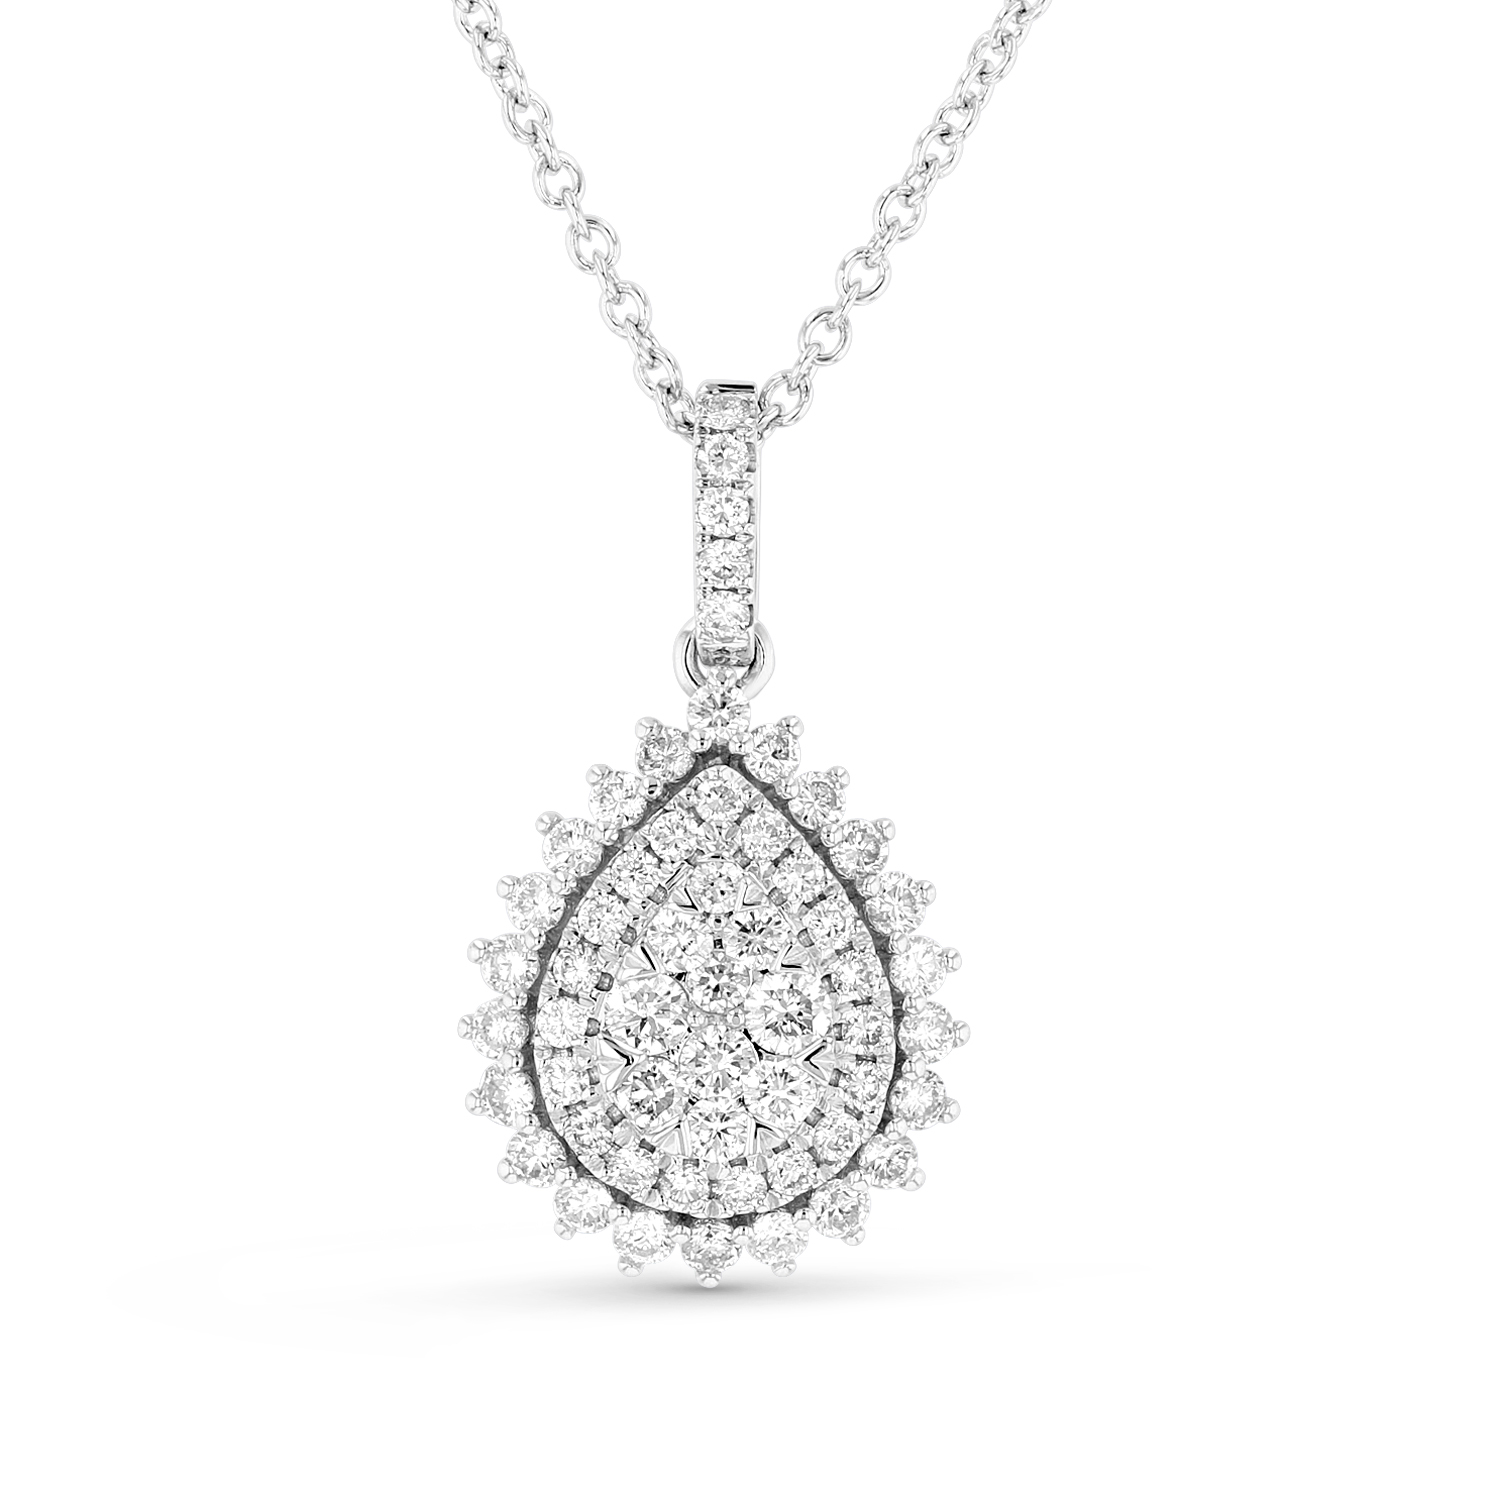 View 1.05ctw Diamond Pear Shaped Pendant in 18k White Gold